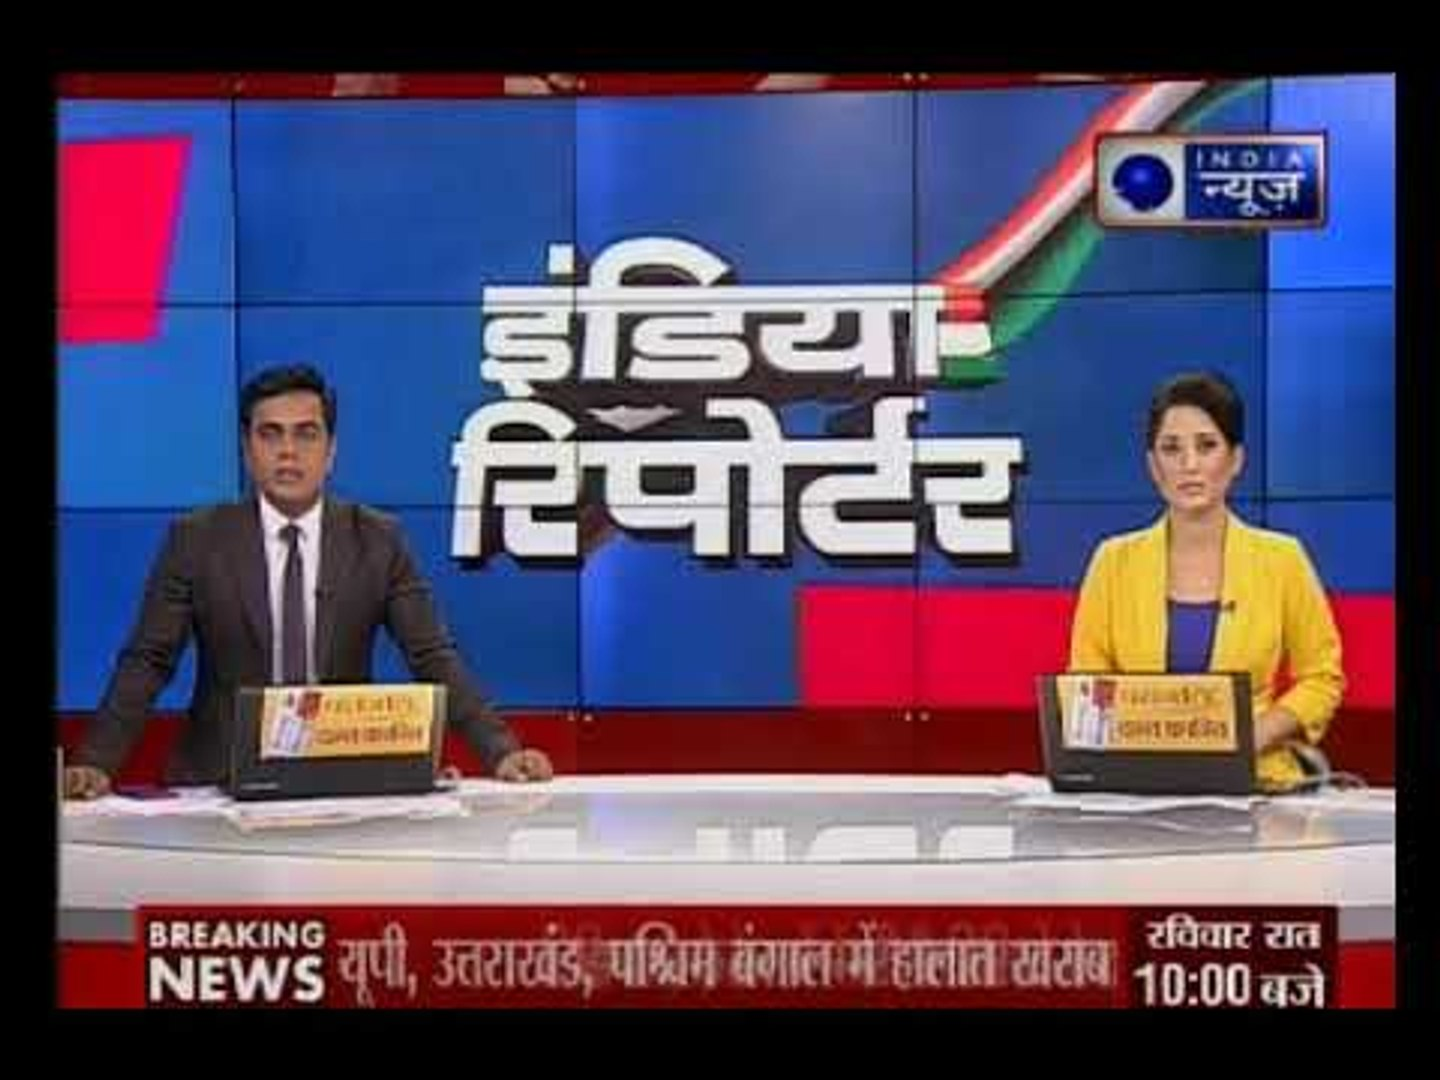 Top News of  India News reporter | India News | आज की बड़ी खबरें (9th August 2018)